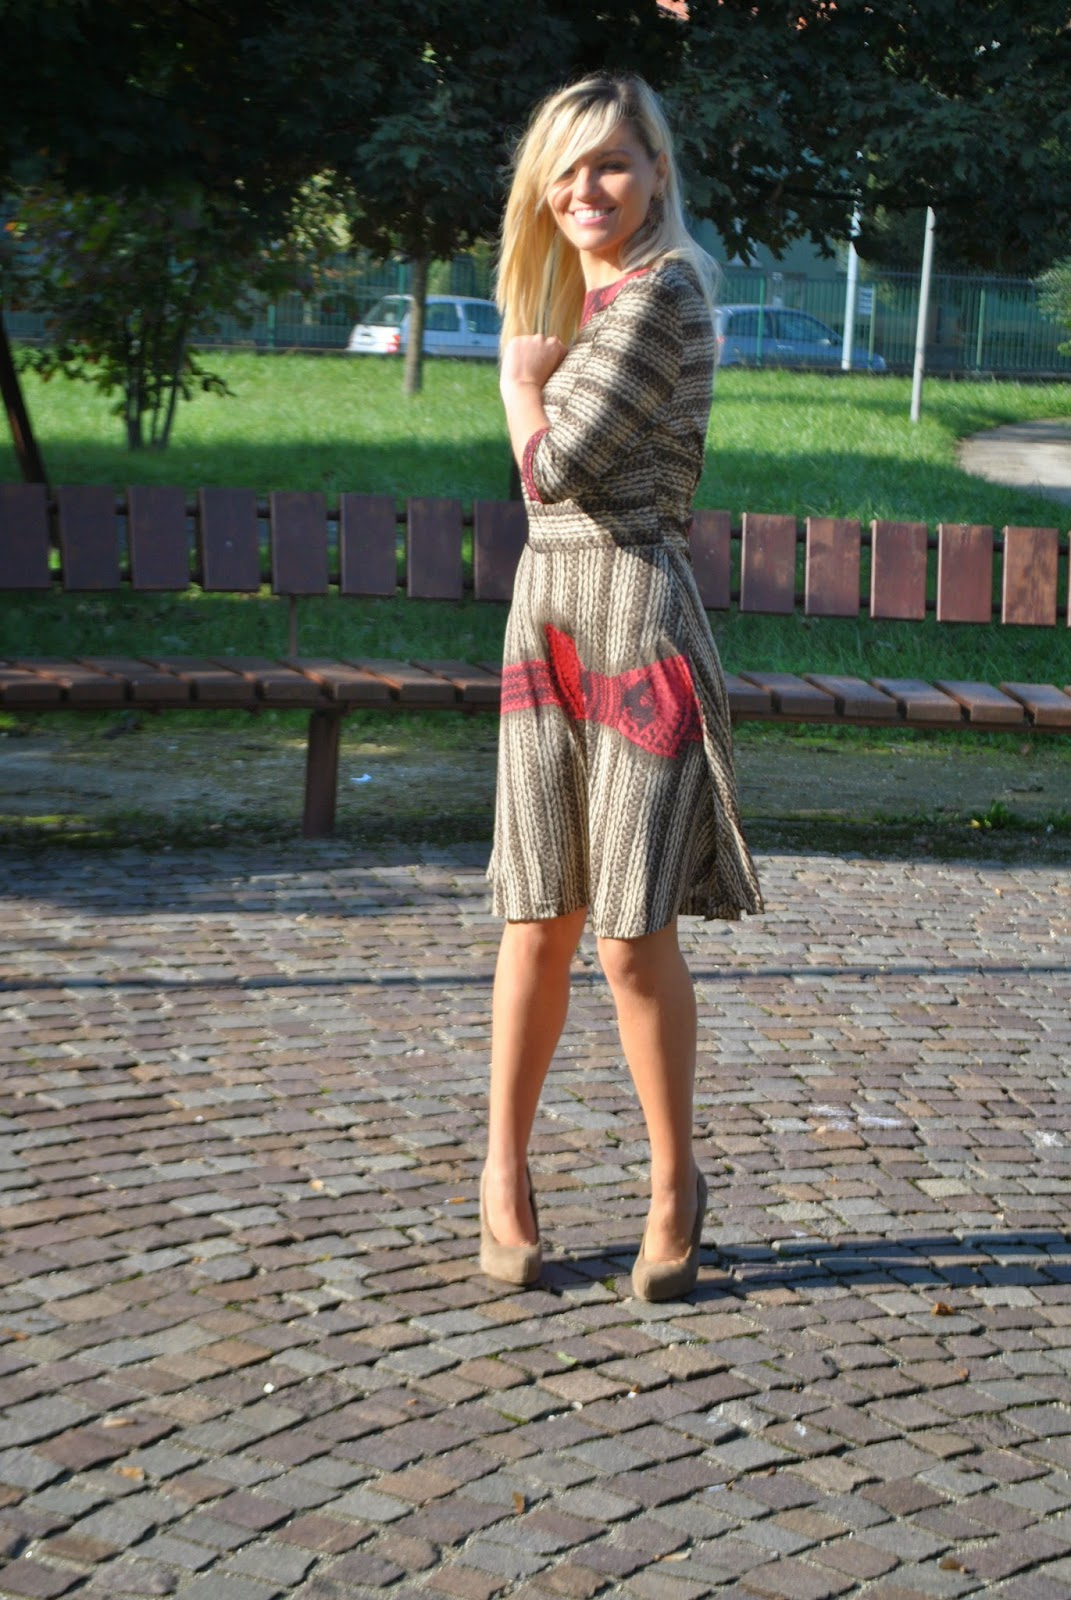 outfit abito con gonna a ruota con stampa maglione di lana stampa lana abito gonna a ruota abiti invernali cappotto rosso outfit cappotto rosso come abbinare il cappotto rosso midi skirt how to wear red coat how to wear midi skirt winter dresses orecchini chandelier majique chandelier earrings majique decollete beige cappotto rosso sisley abito stampato fashion blogger italiane fashion blogger milano fashion blogger bionde ragazze bionde smalto color sangria scarpe benetton borsa louis vuitton mariafelicia magno fashion blogger mariafelicia magno colorblock by felym outfit ottobre 2014 outfit autunnali outfit invernali